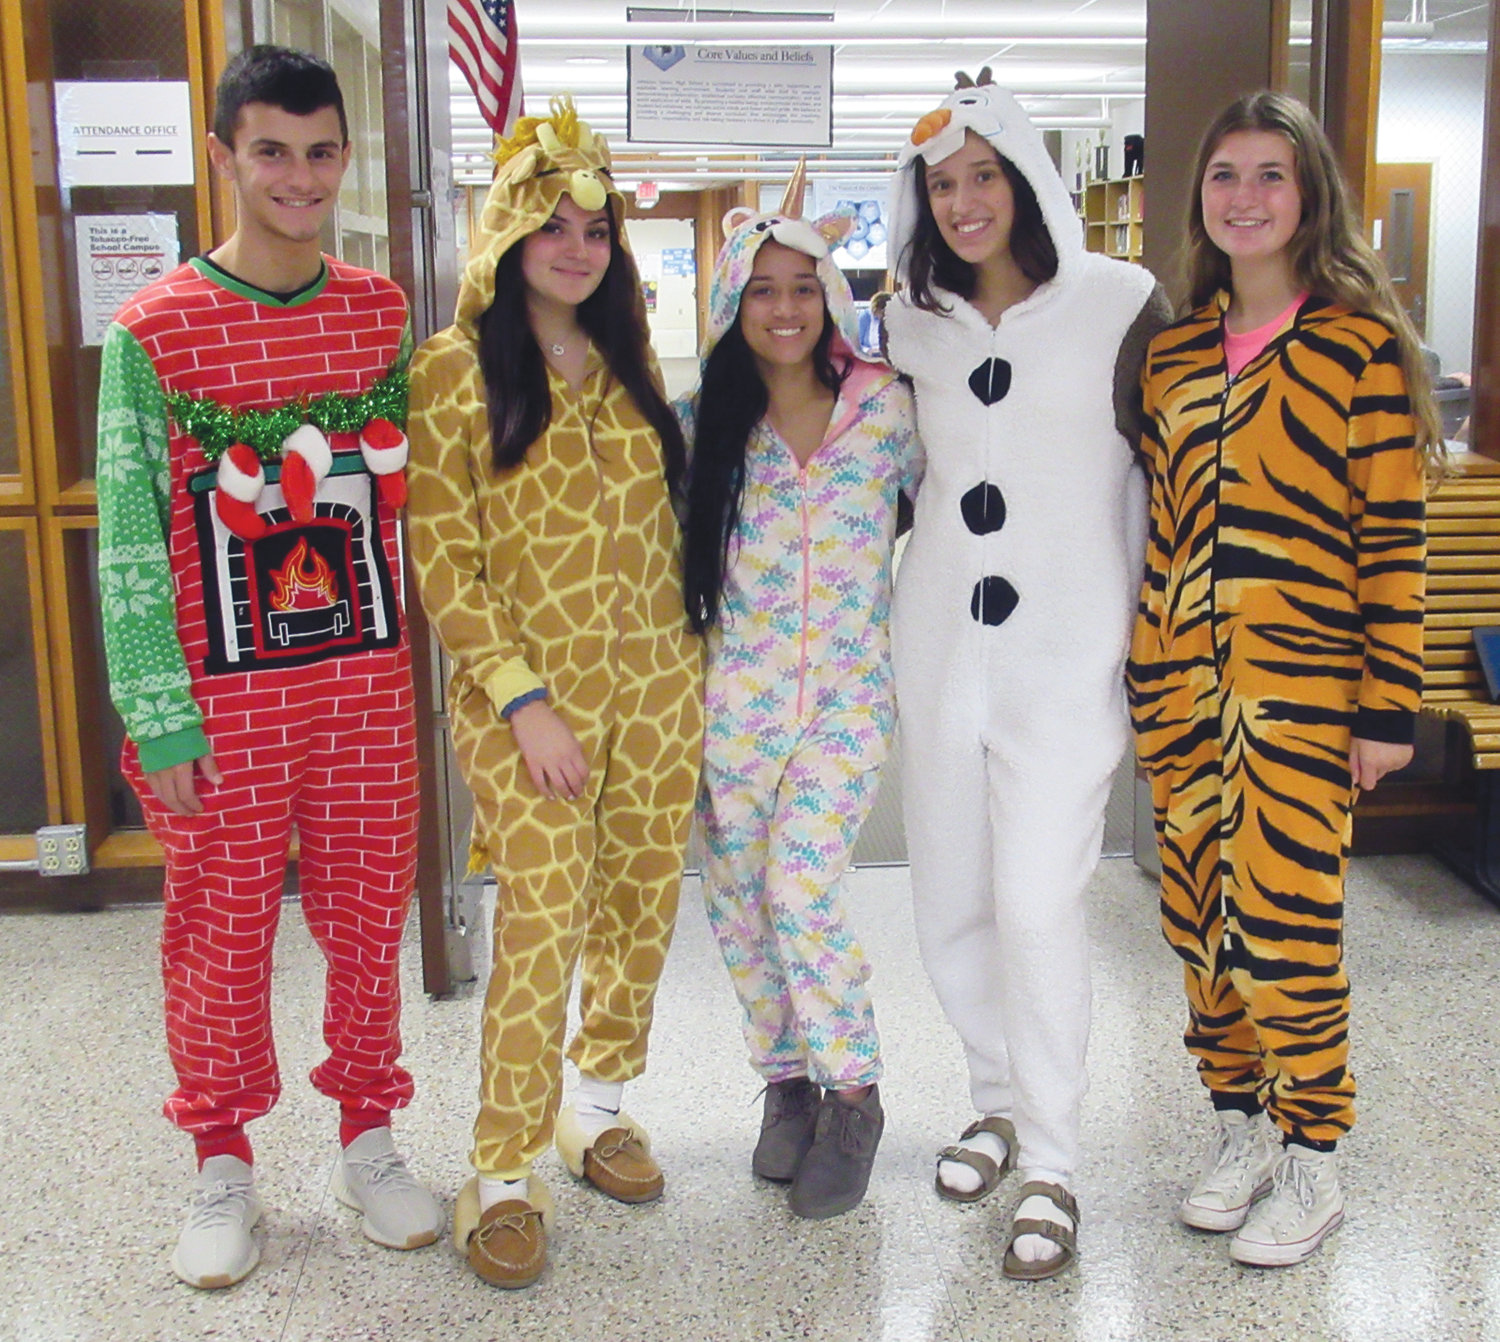 SUPER SPIRITS: Among the dozens of Johnston High School students who came to school sporting classic costumes for Tuesday's Onesie Day were, from left, Joey LaVallee, Angelina Emerson, Emicely Rodriguez, Olivia Costa and Delaney LaRose.